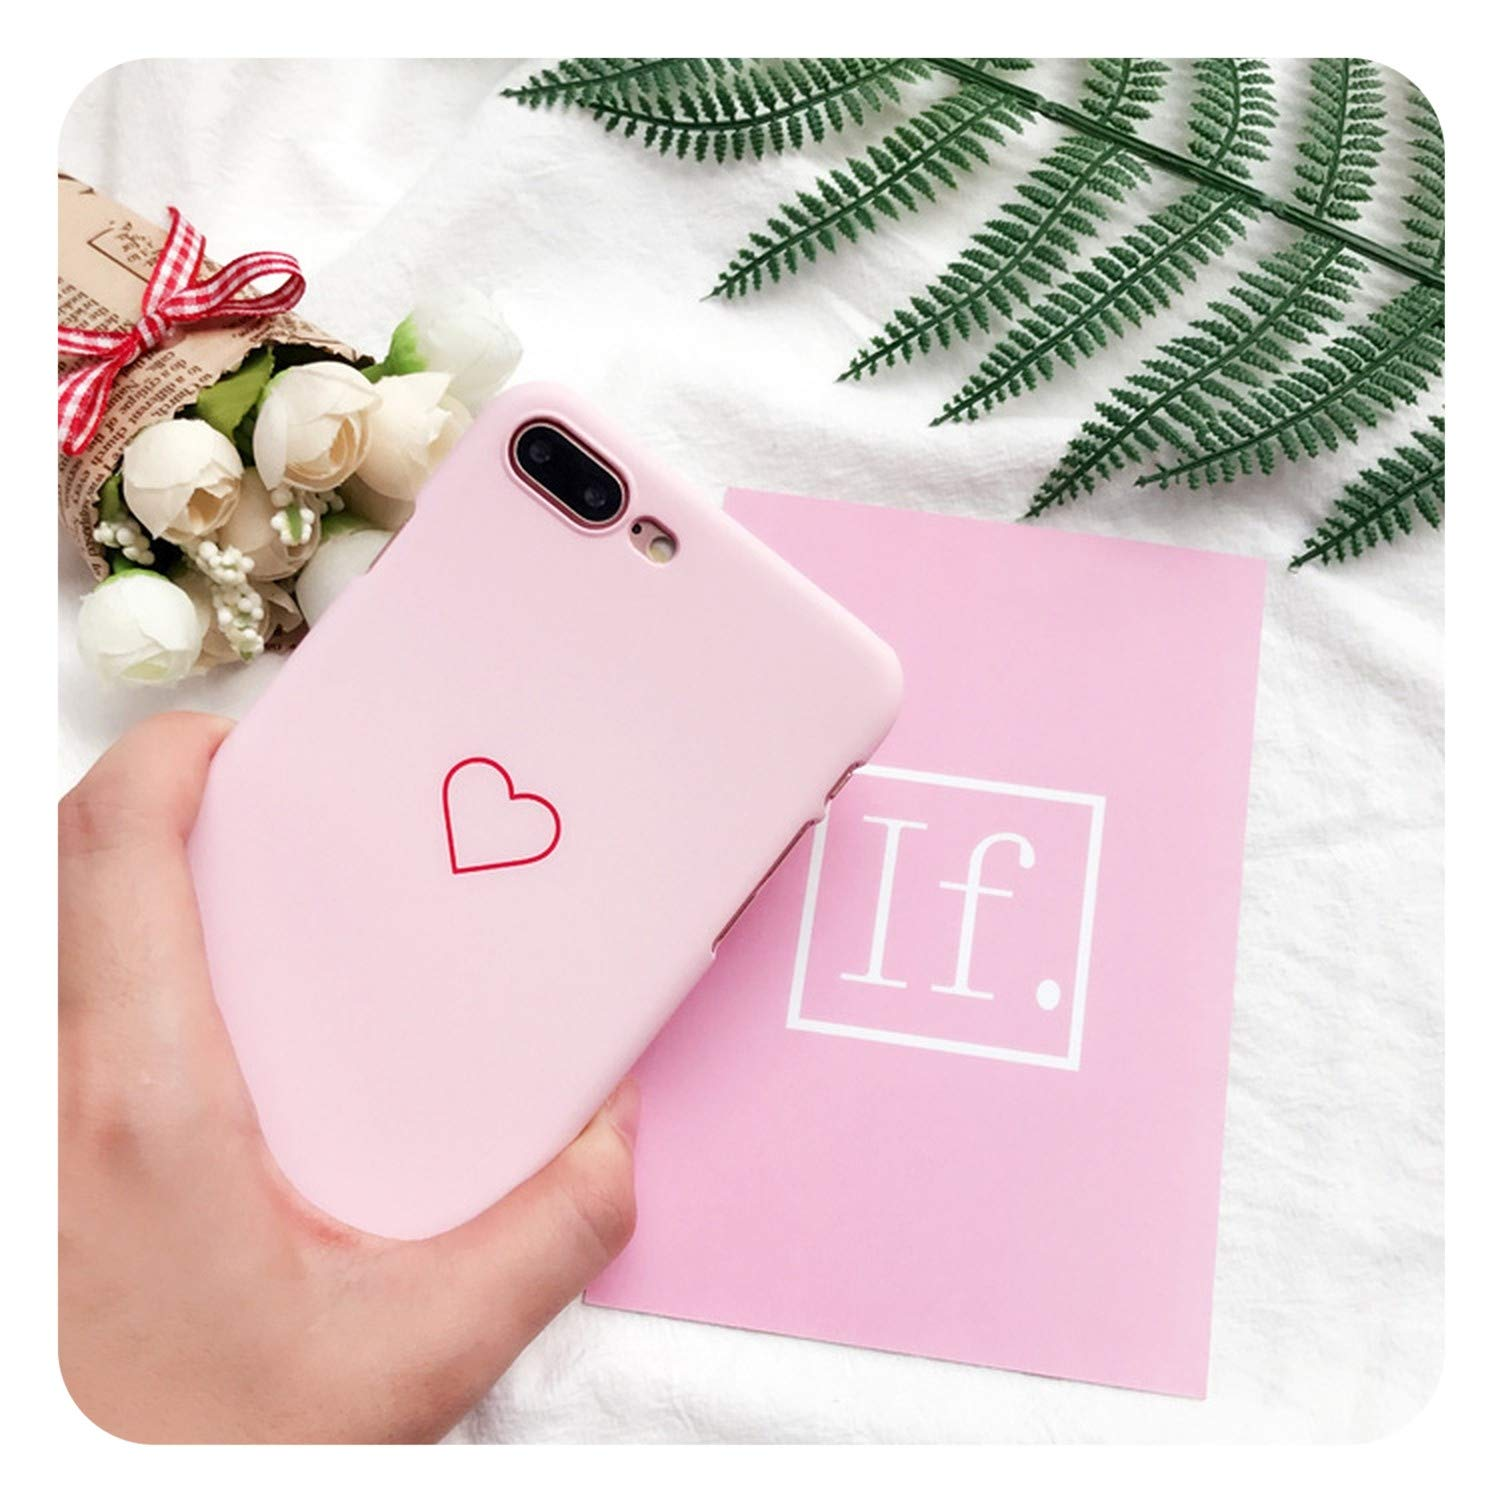 57224a4b1e Amazon.com: ksky qiang Phone Case for iPhone 6 6s 7 8 Plus X XR XS Max 5 5s  SE Cute Cartoon Love Heart Hard PC Couple Fundas for iPhone X Cover,Pink,for  ...